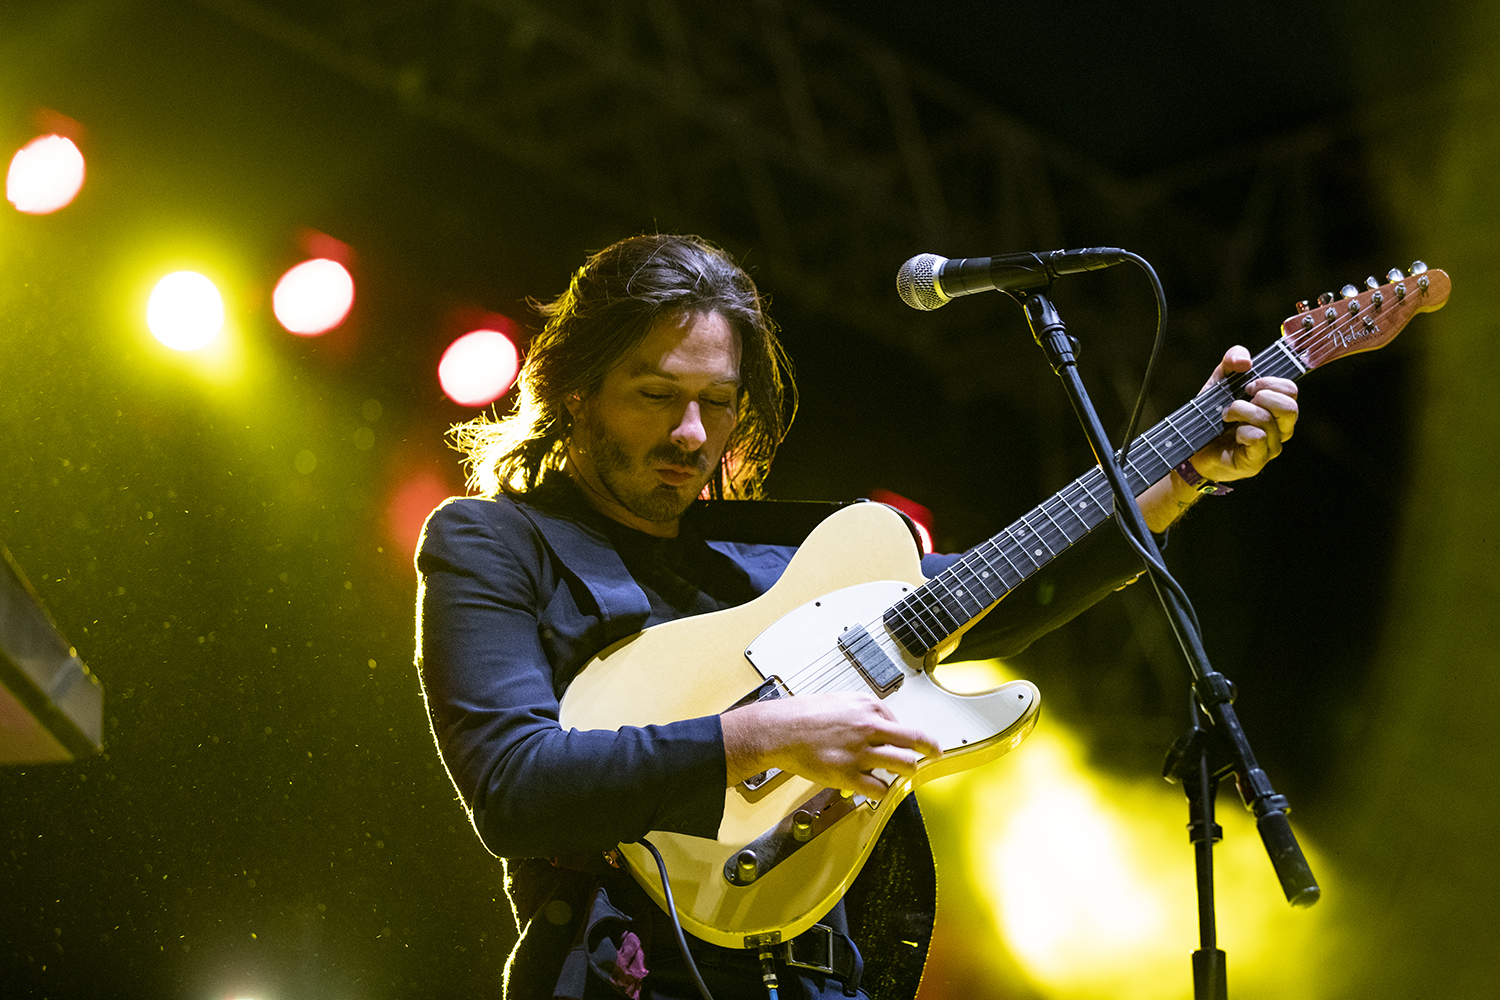 Ray Libby, guitarist for Bad Suns, performs during the Scope Productions sponsored concert on the pentacrest. The free concert was hosted by Scope Productions and was headlined by the band Bad Suns on October 18, 2019.